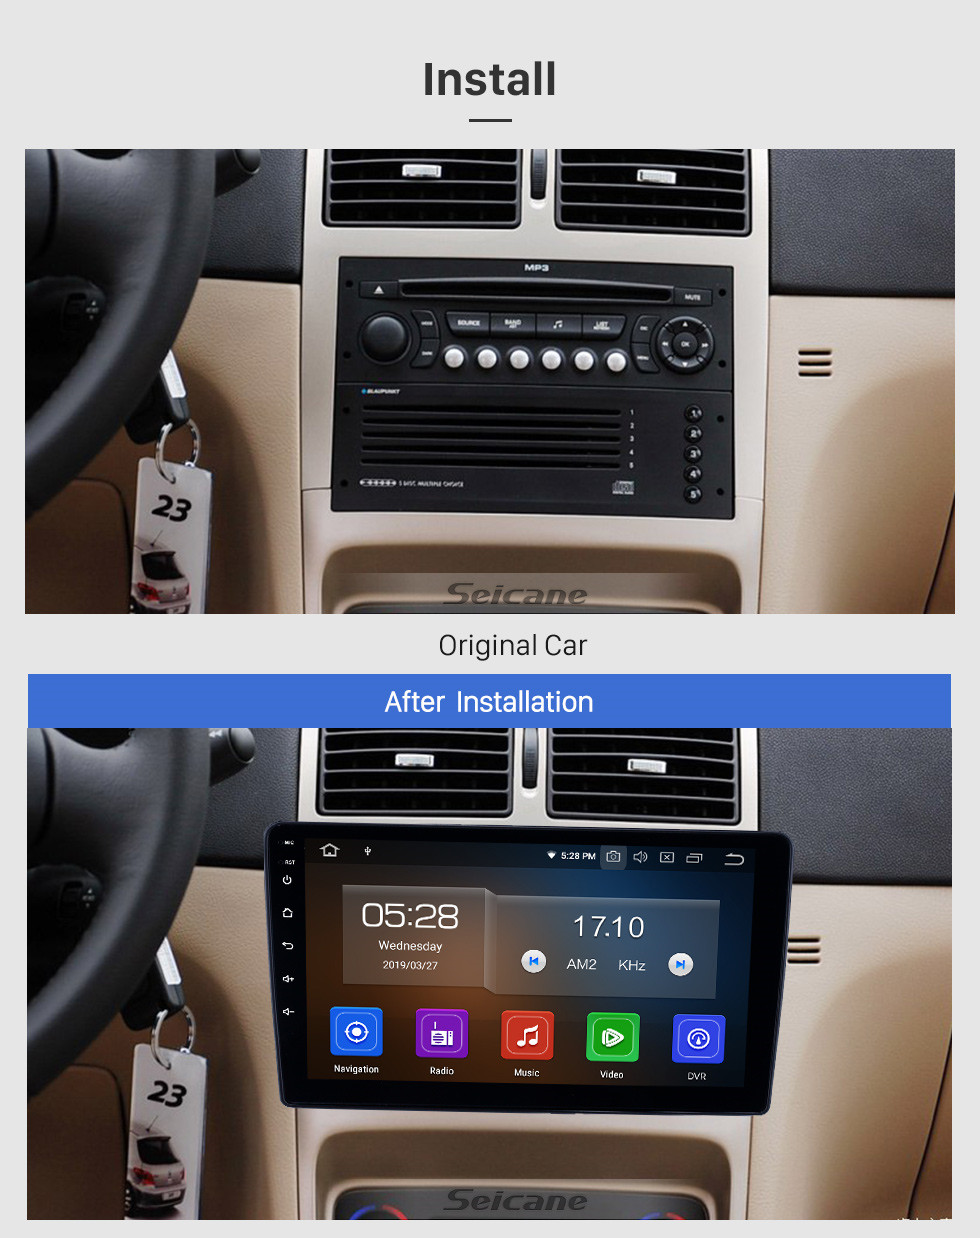 Seicane 2001-2008 Peugeot 307 Android 10.0 9 inch GPS Navigation Radio Bluetooth HD Touchscreen USB Carplay Music support TPMS DAB+ 1080P Video Mirror Link